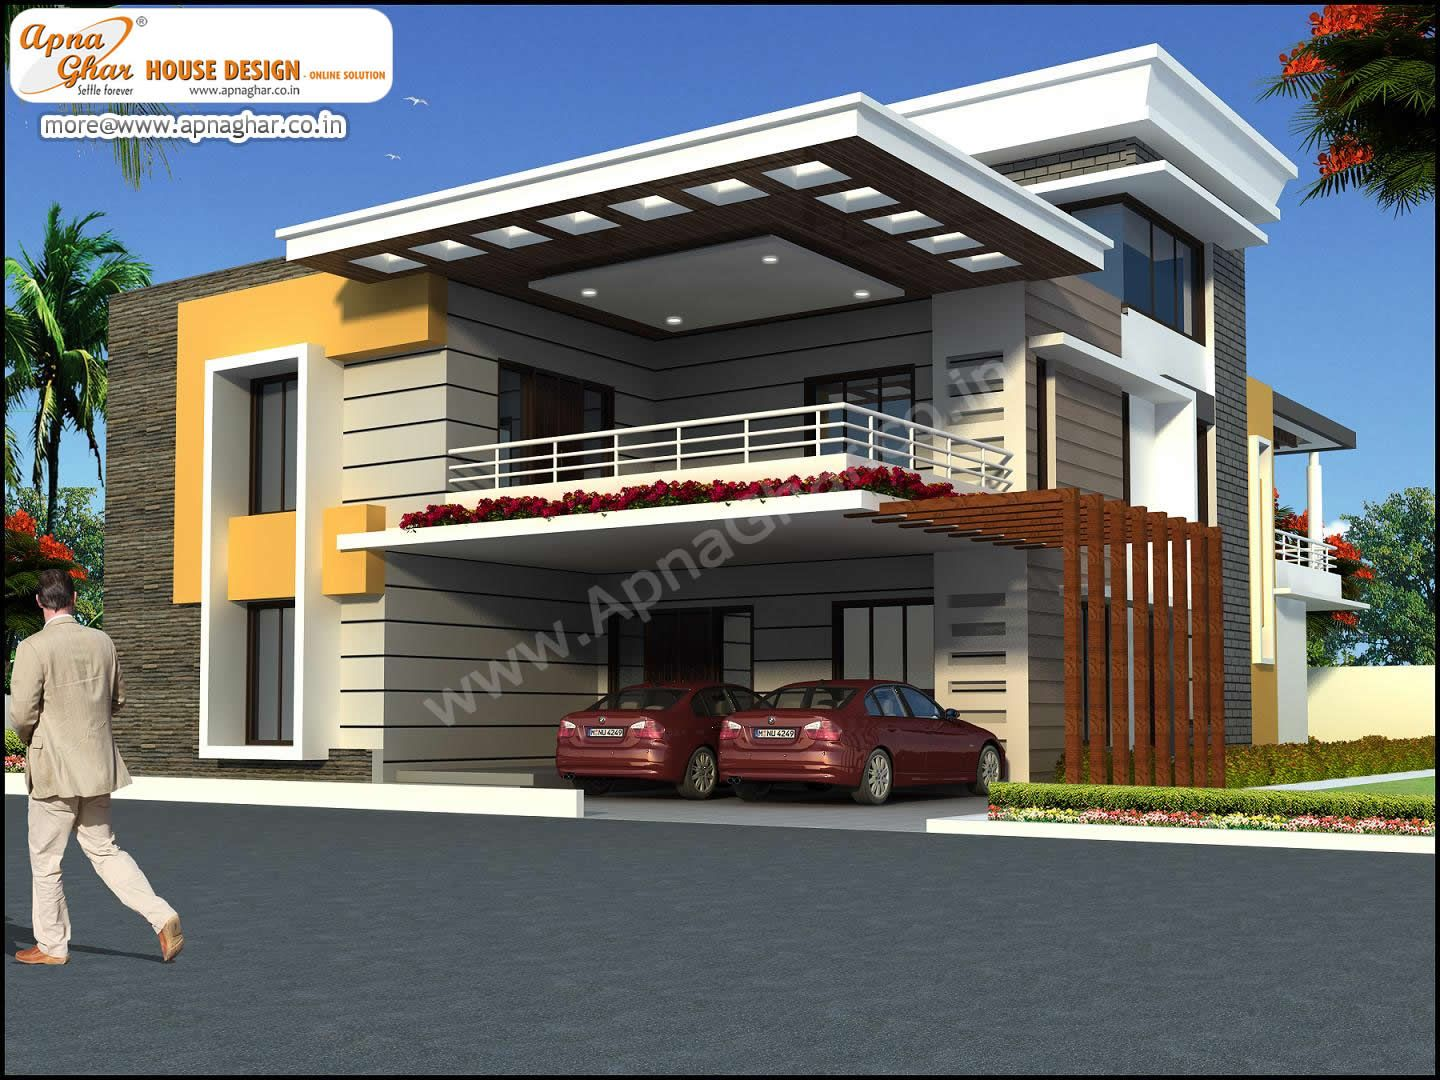 5 bedroom duplex 2 floors house design area 450m2 for Front view of duplex house in india